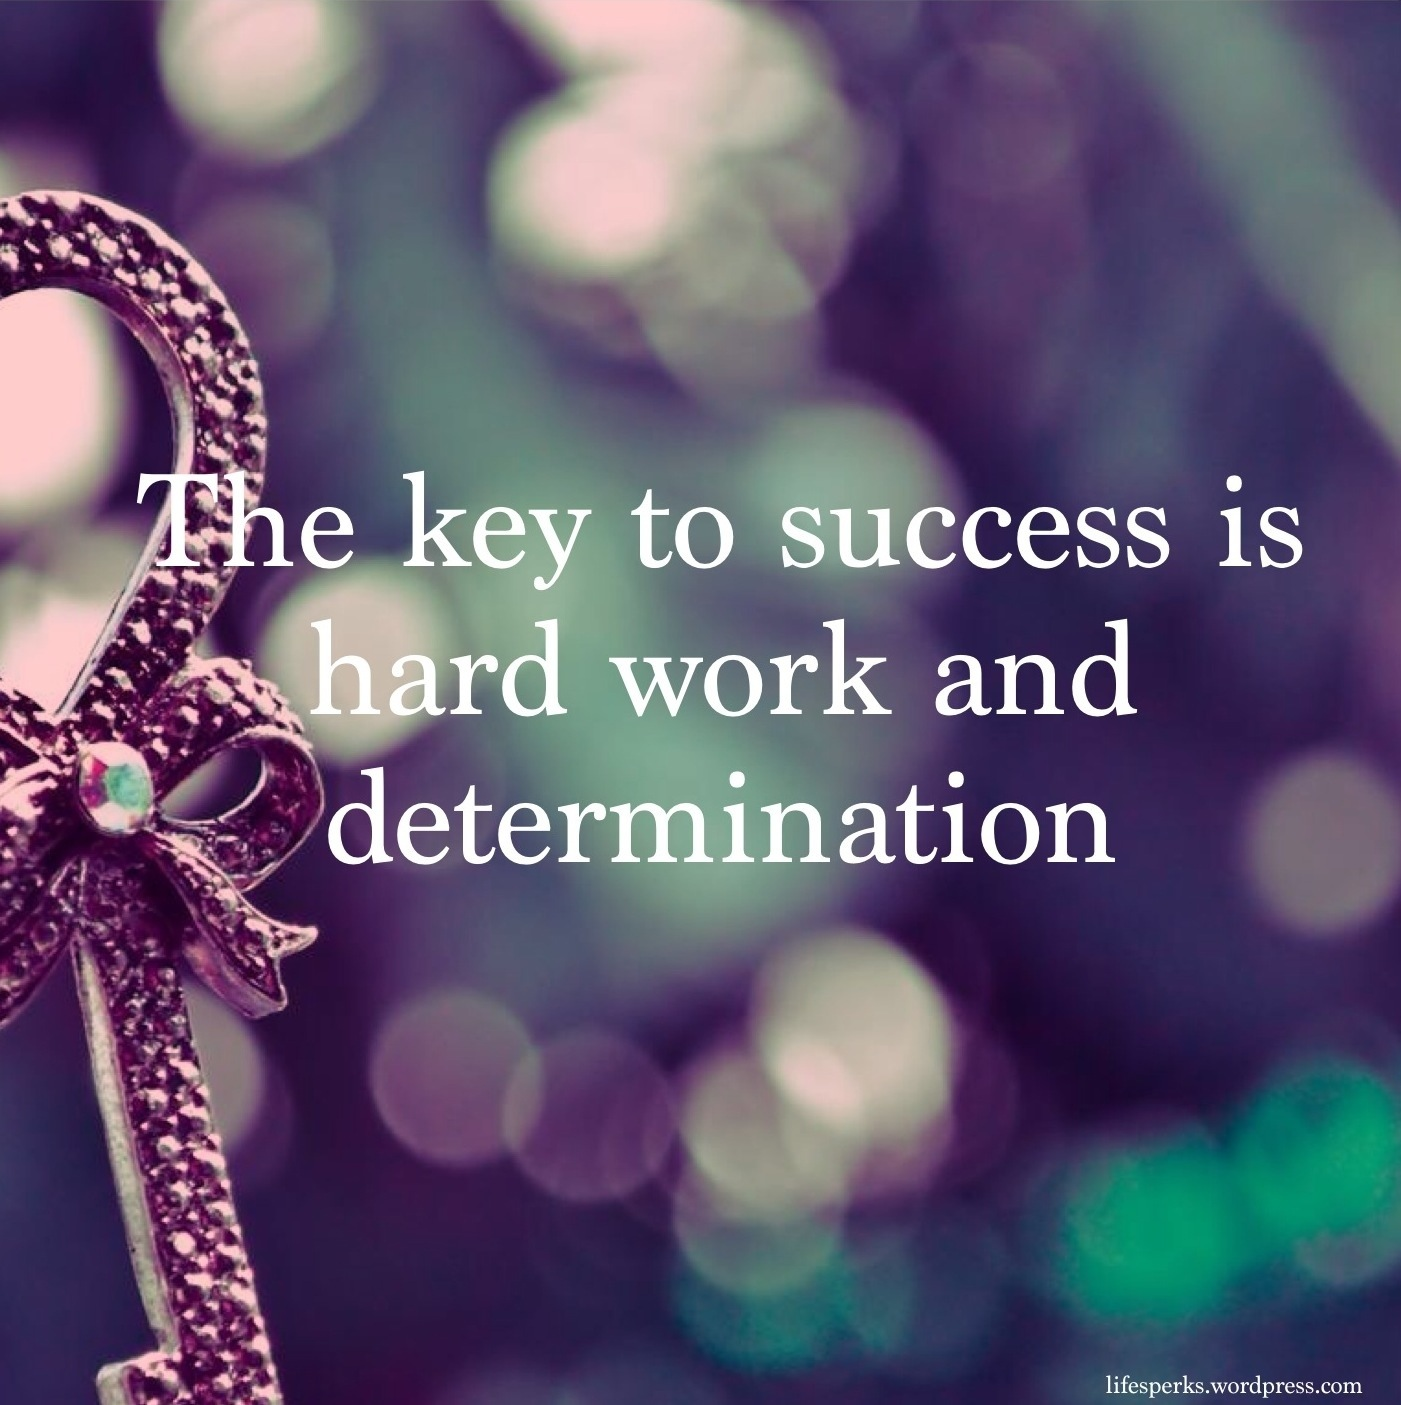 Success Quotes HD Wallpapers 1401x1405